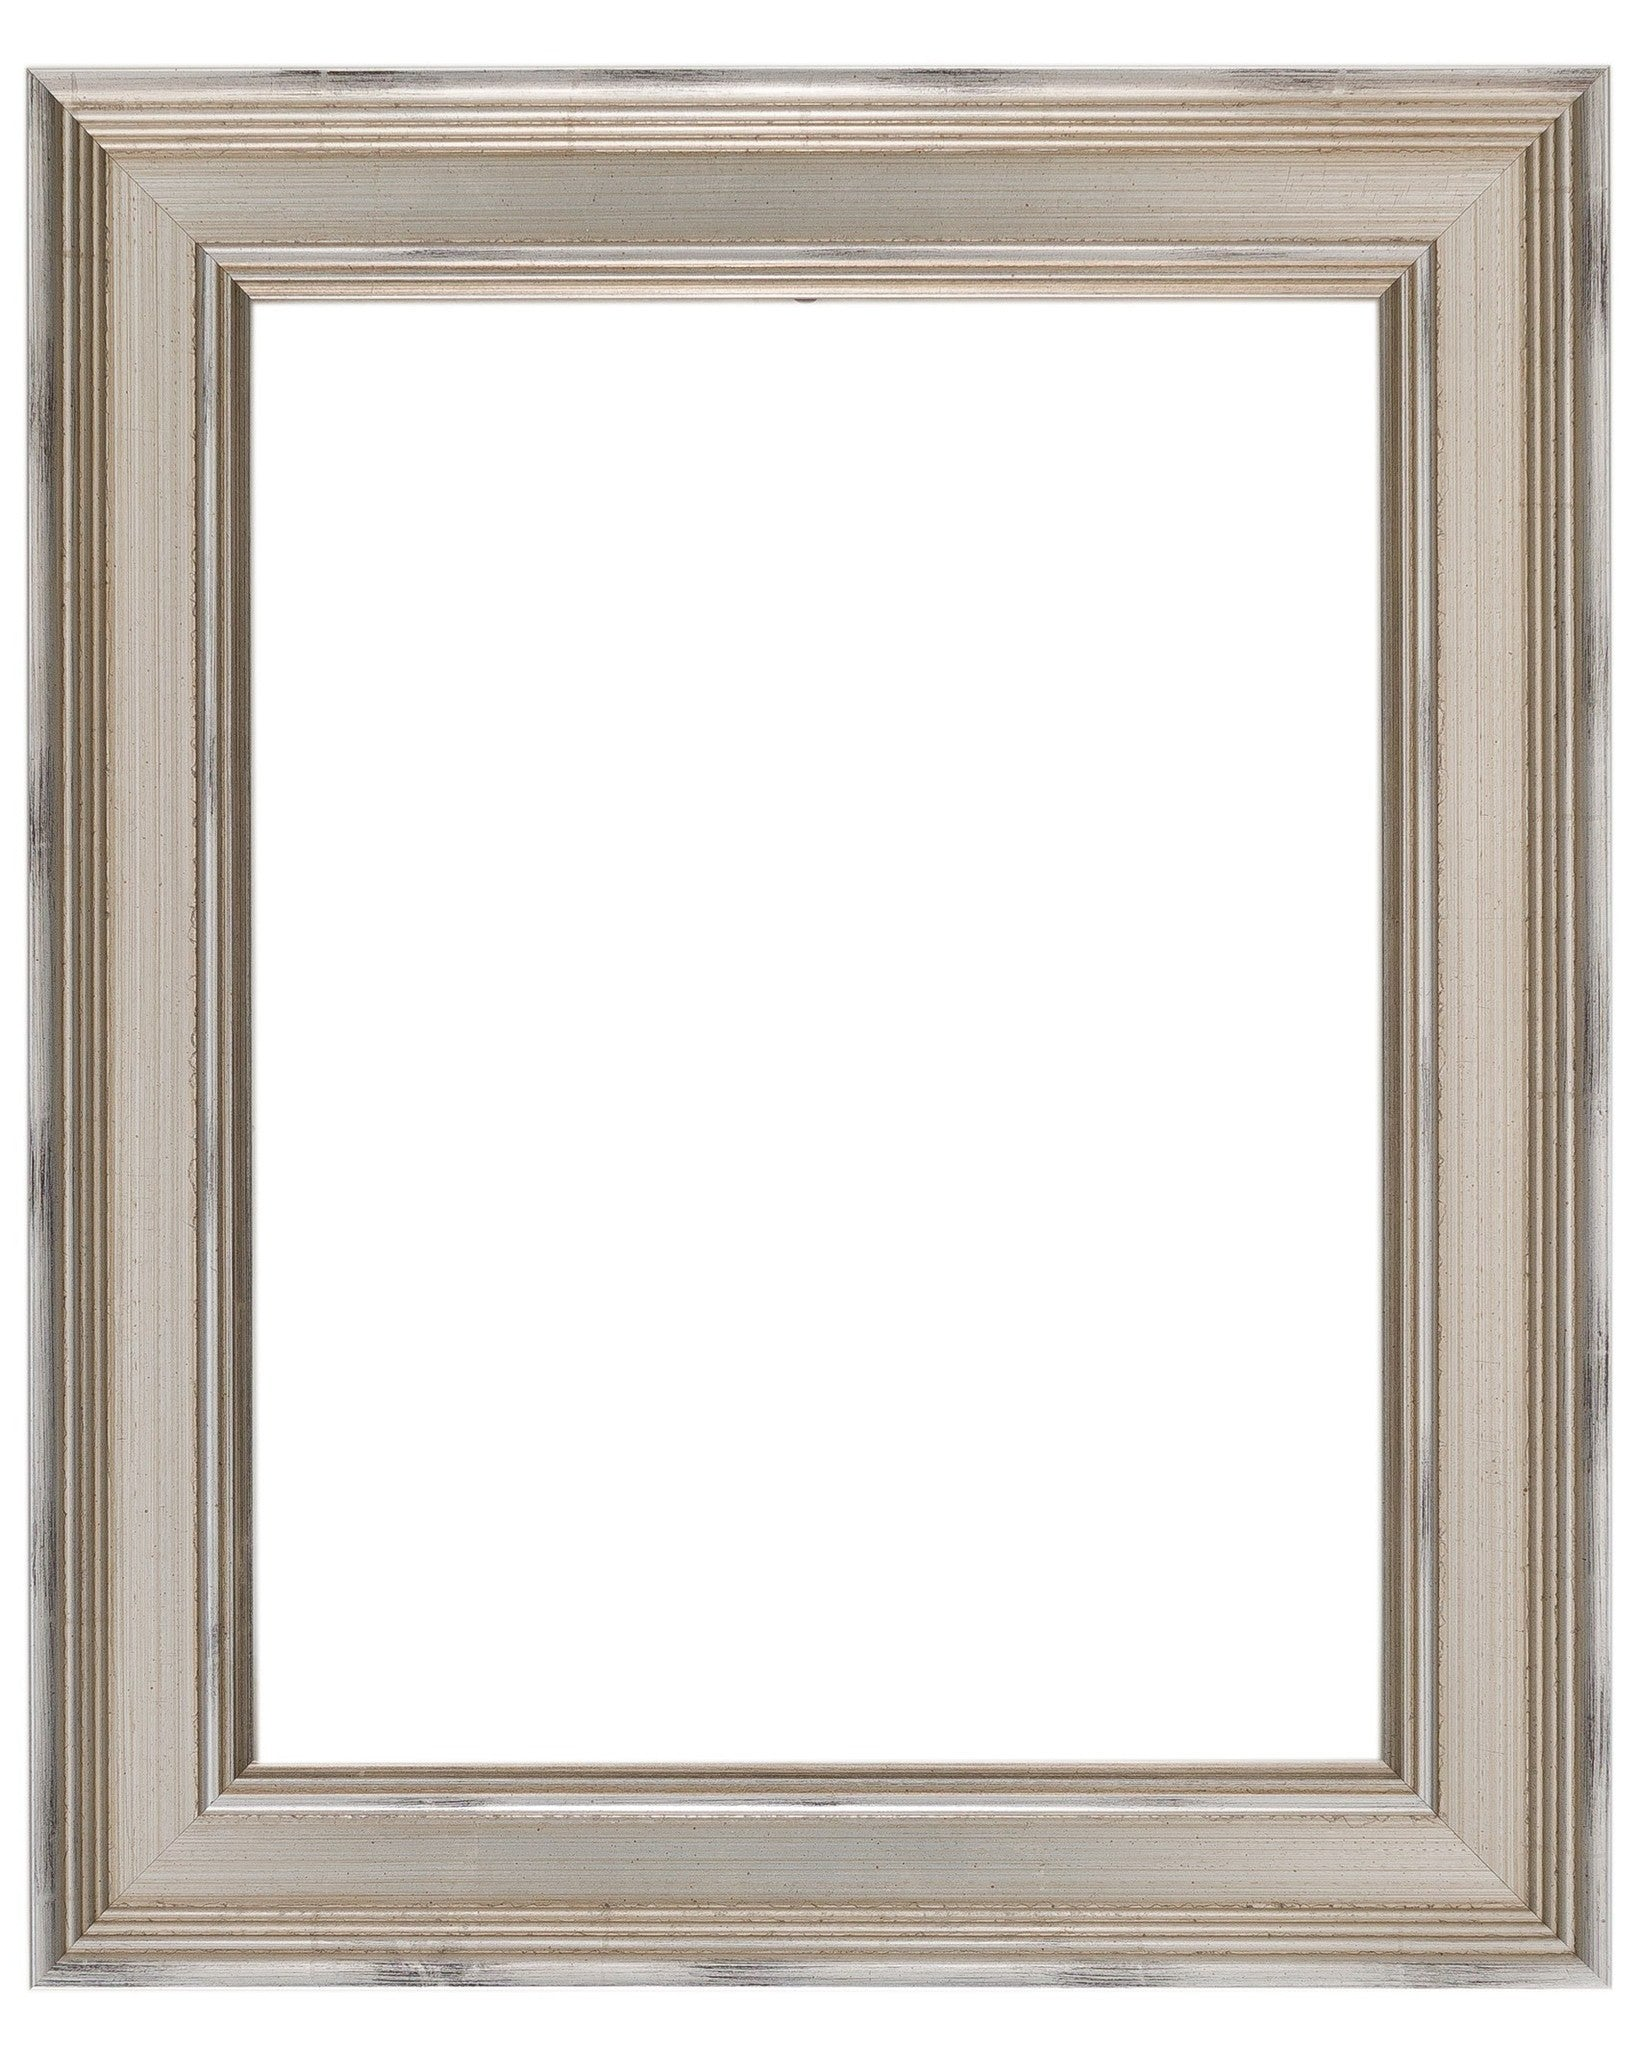 Silver Frame with Light Wash - Wholesale Frame Company